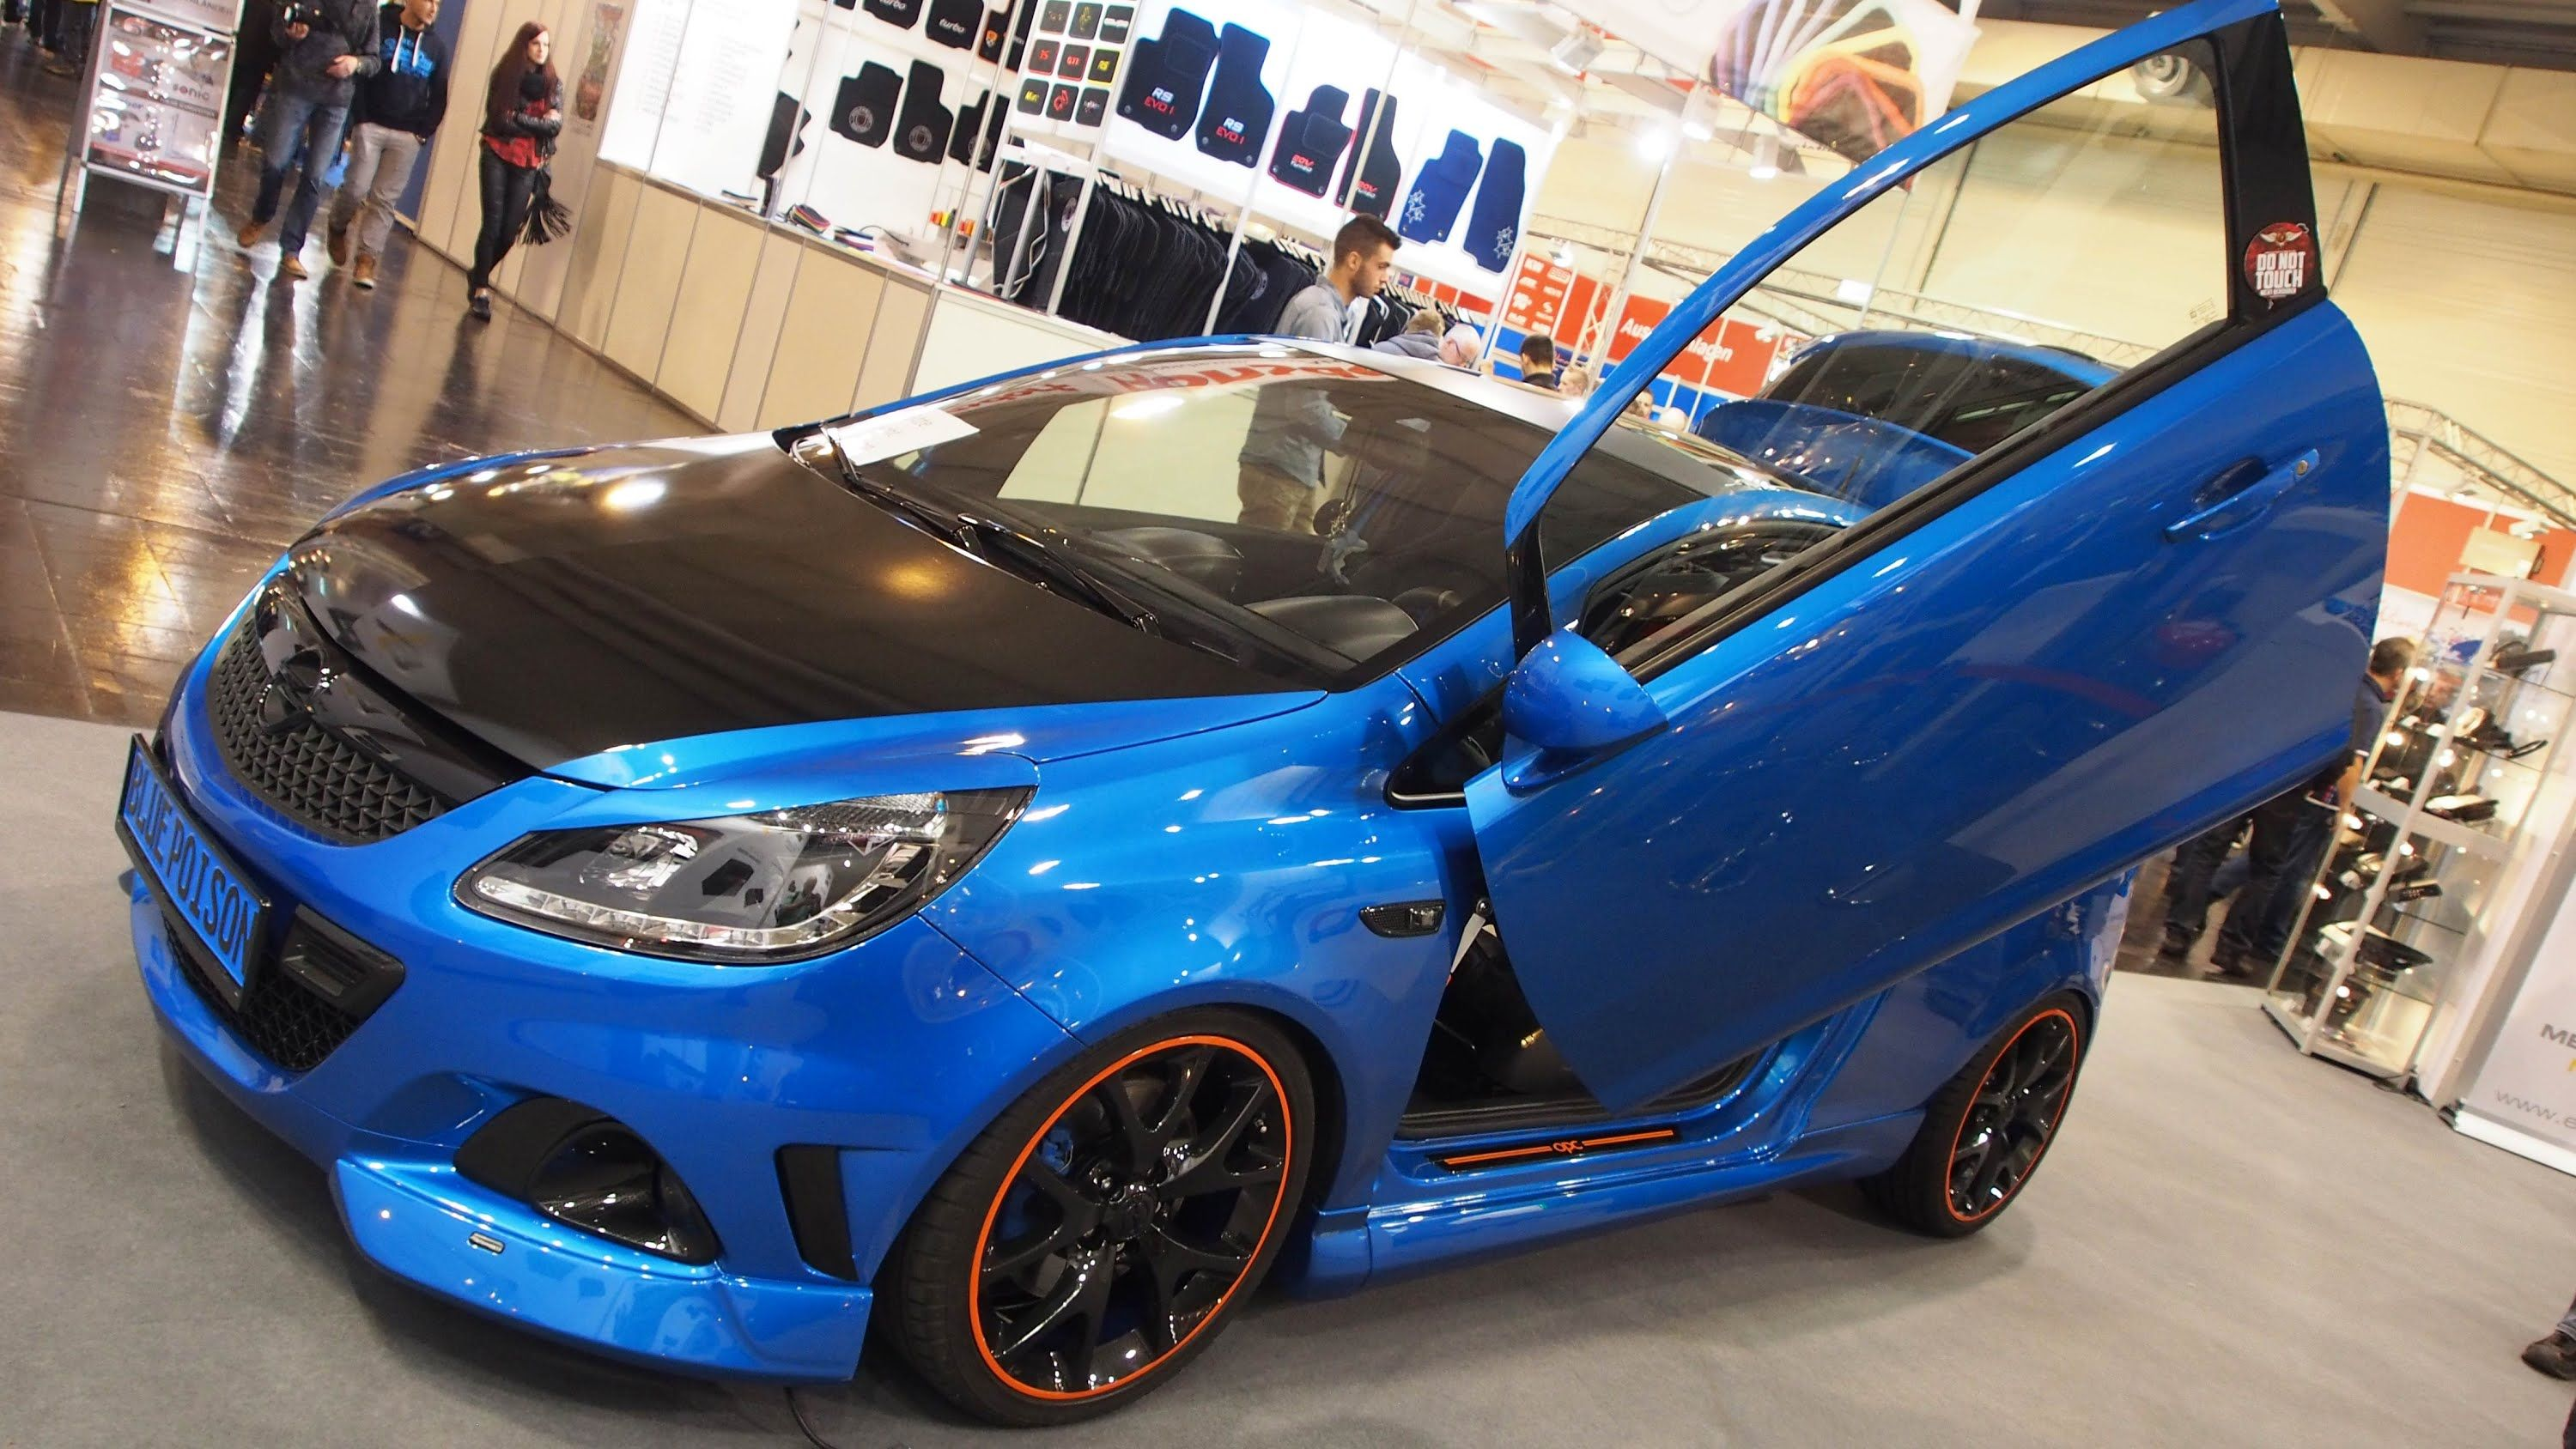 opel corsa d opc audio tuning at essen motorshow exterior walkaround essen motor show 2014. Black Bedroom Furniture Sets. Home Design Ideas